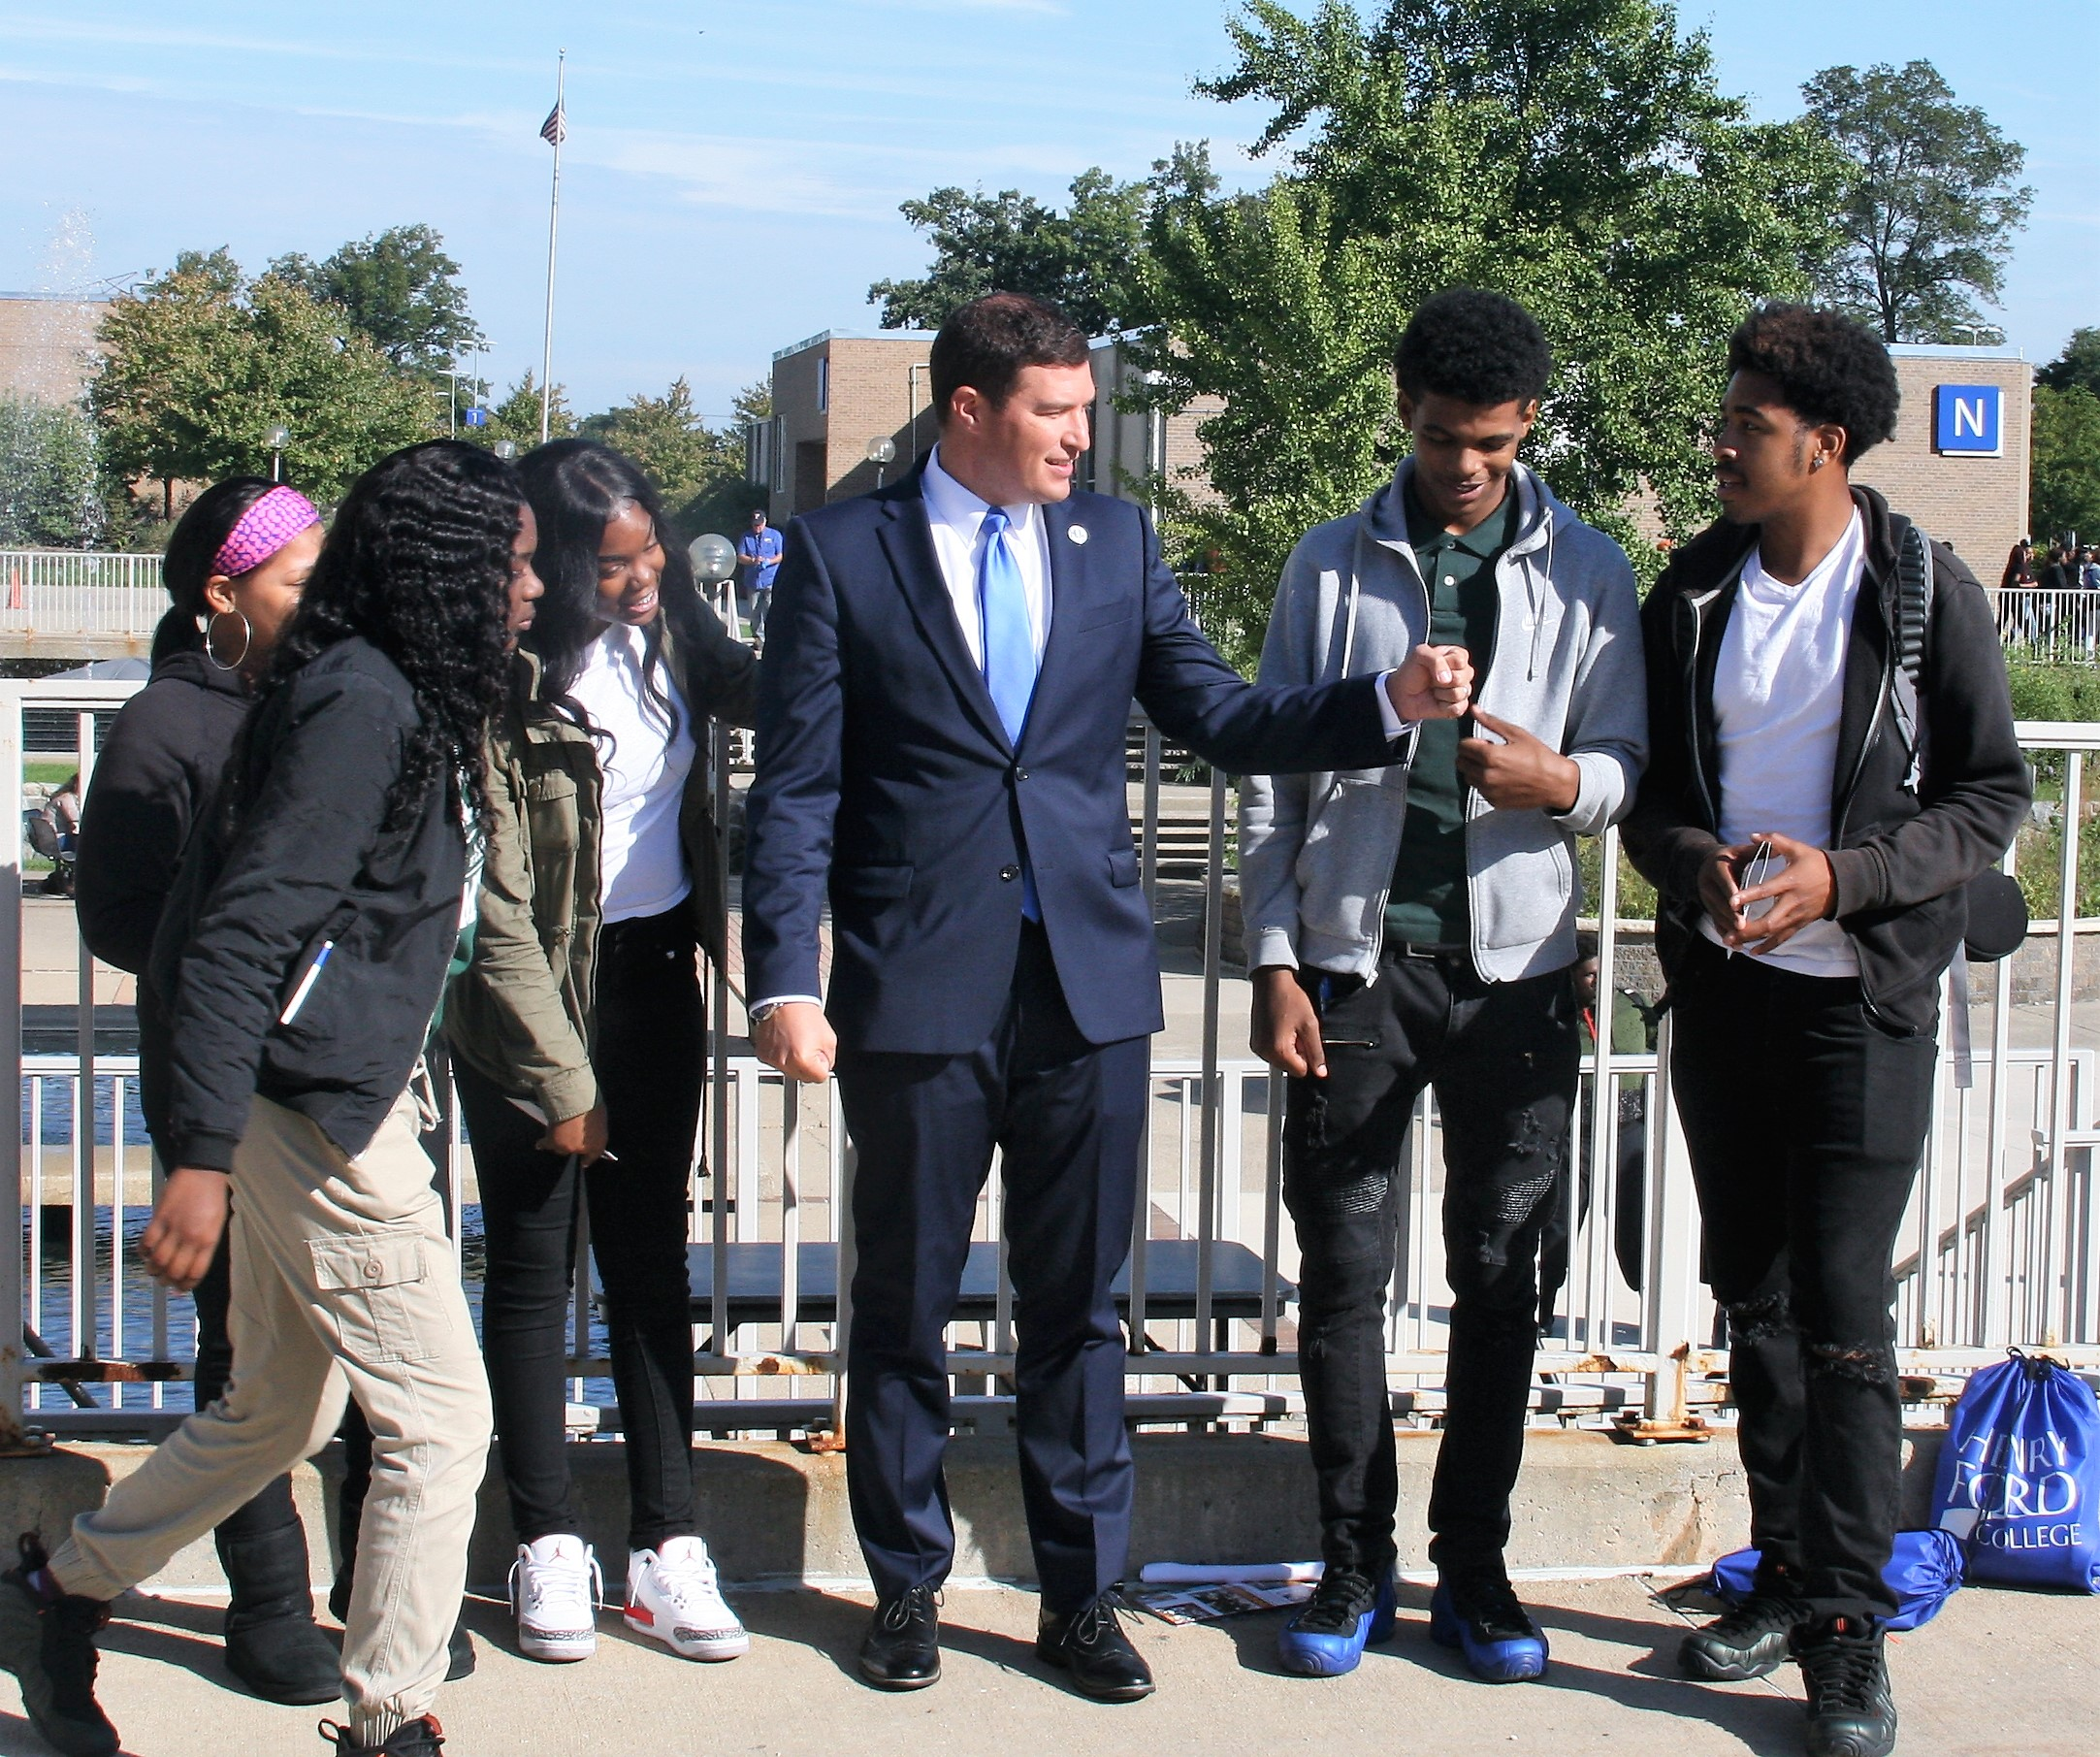 Students from Cody High School in Detroit hang around with President Russell Kavalhuna at Discover Day.